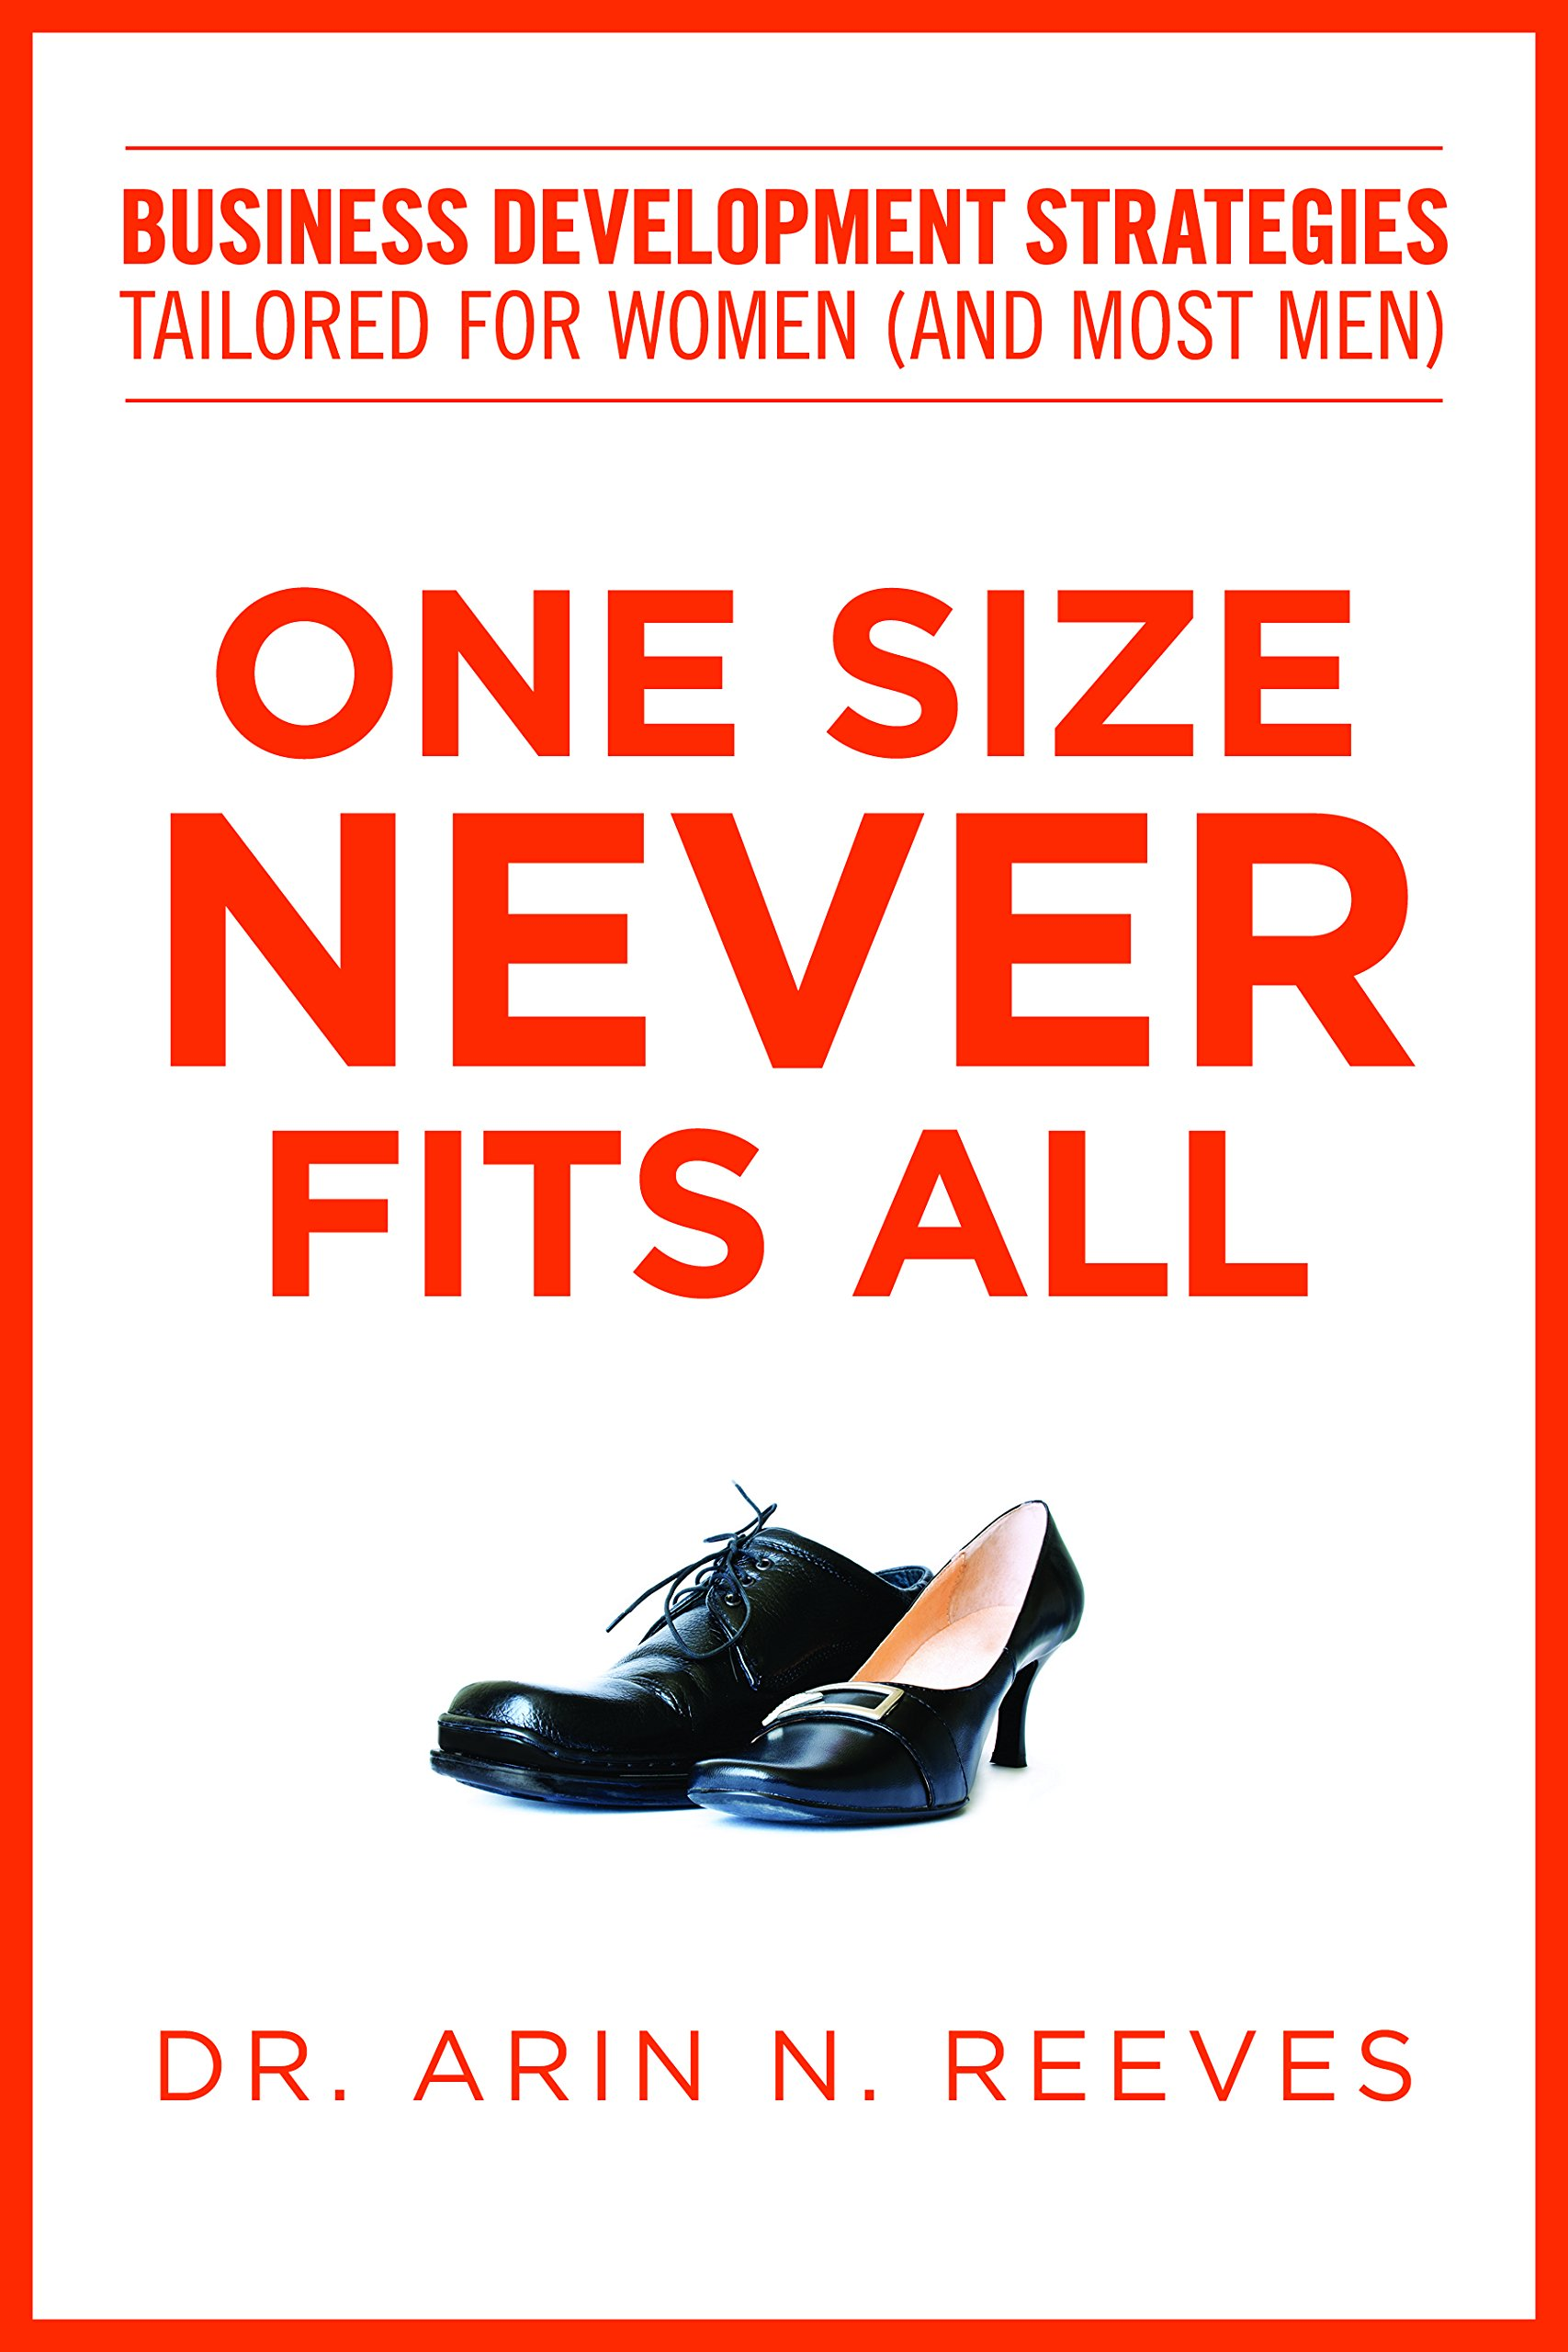 One Size Never Fits All